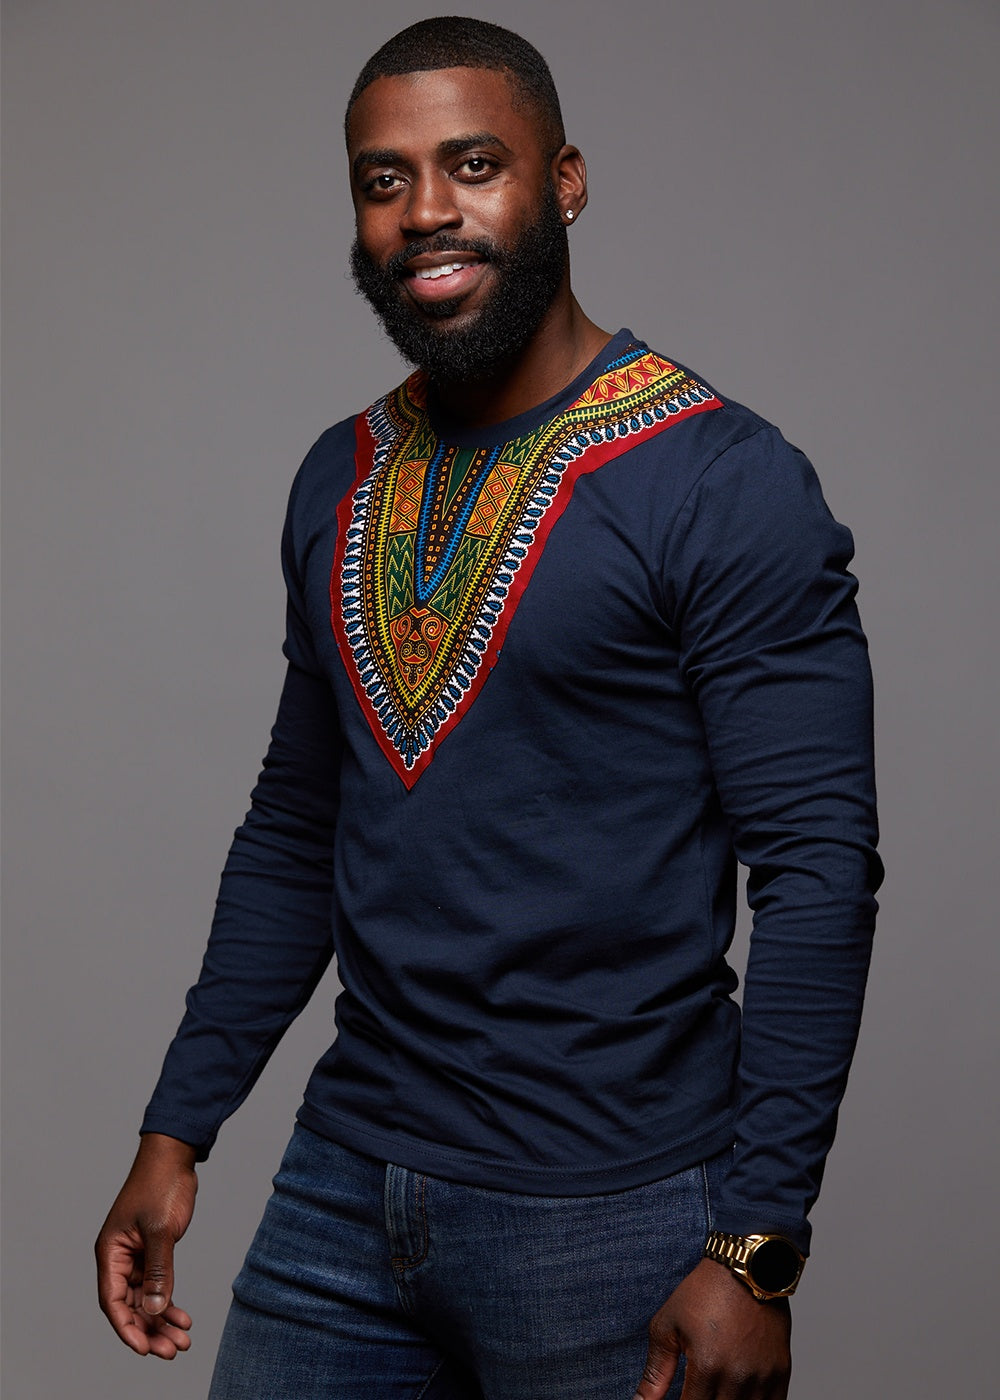 African Style Printed Long Sleeve Top T-Shirt Round Neck Mens Shirt Dashiki New